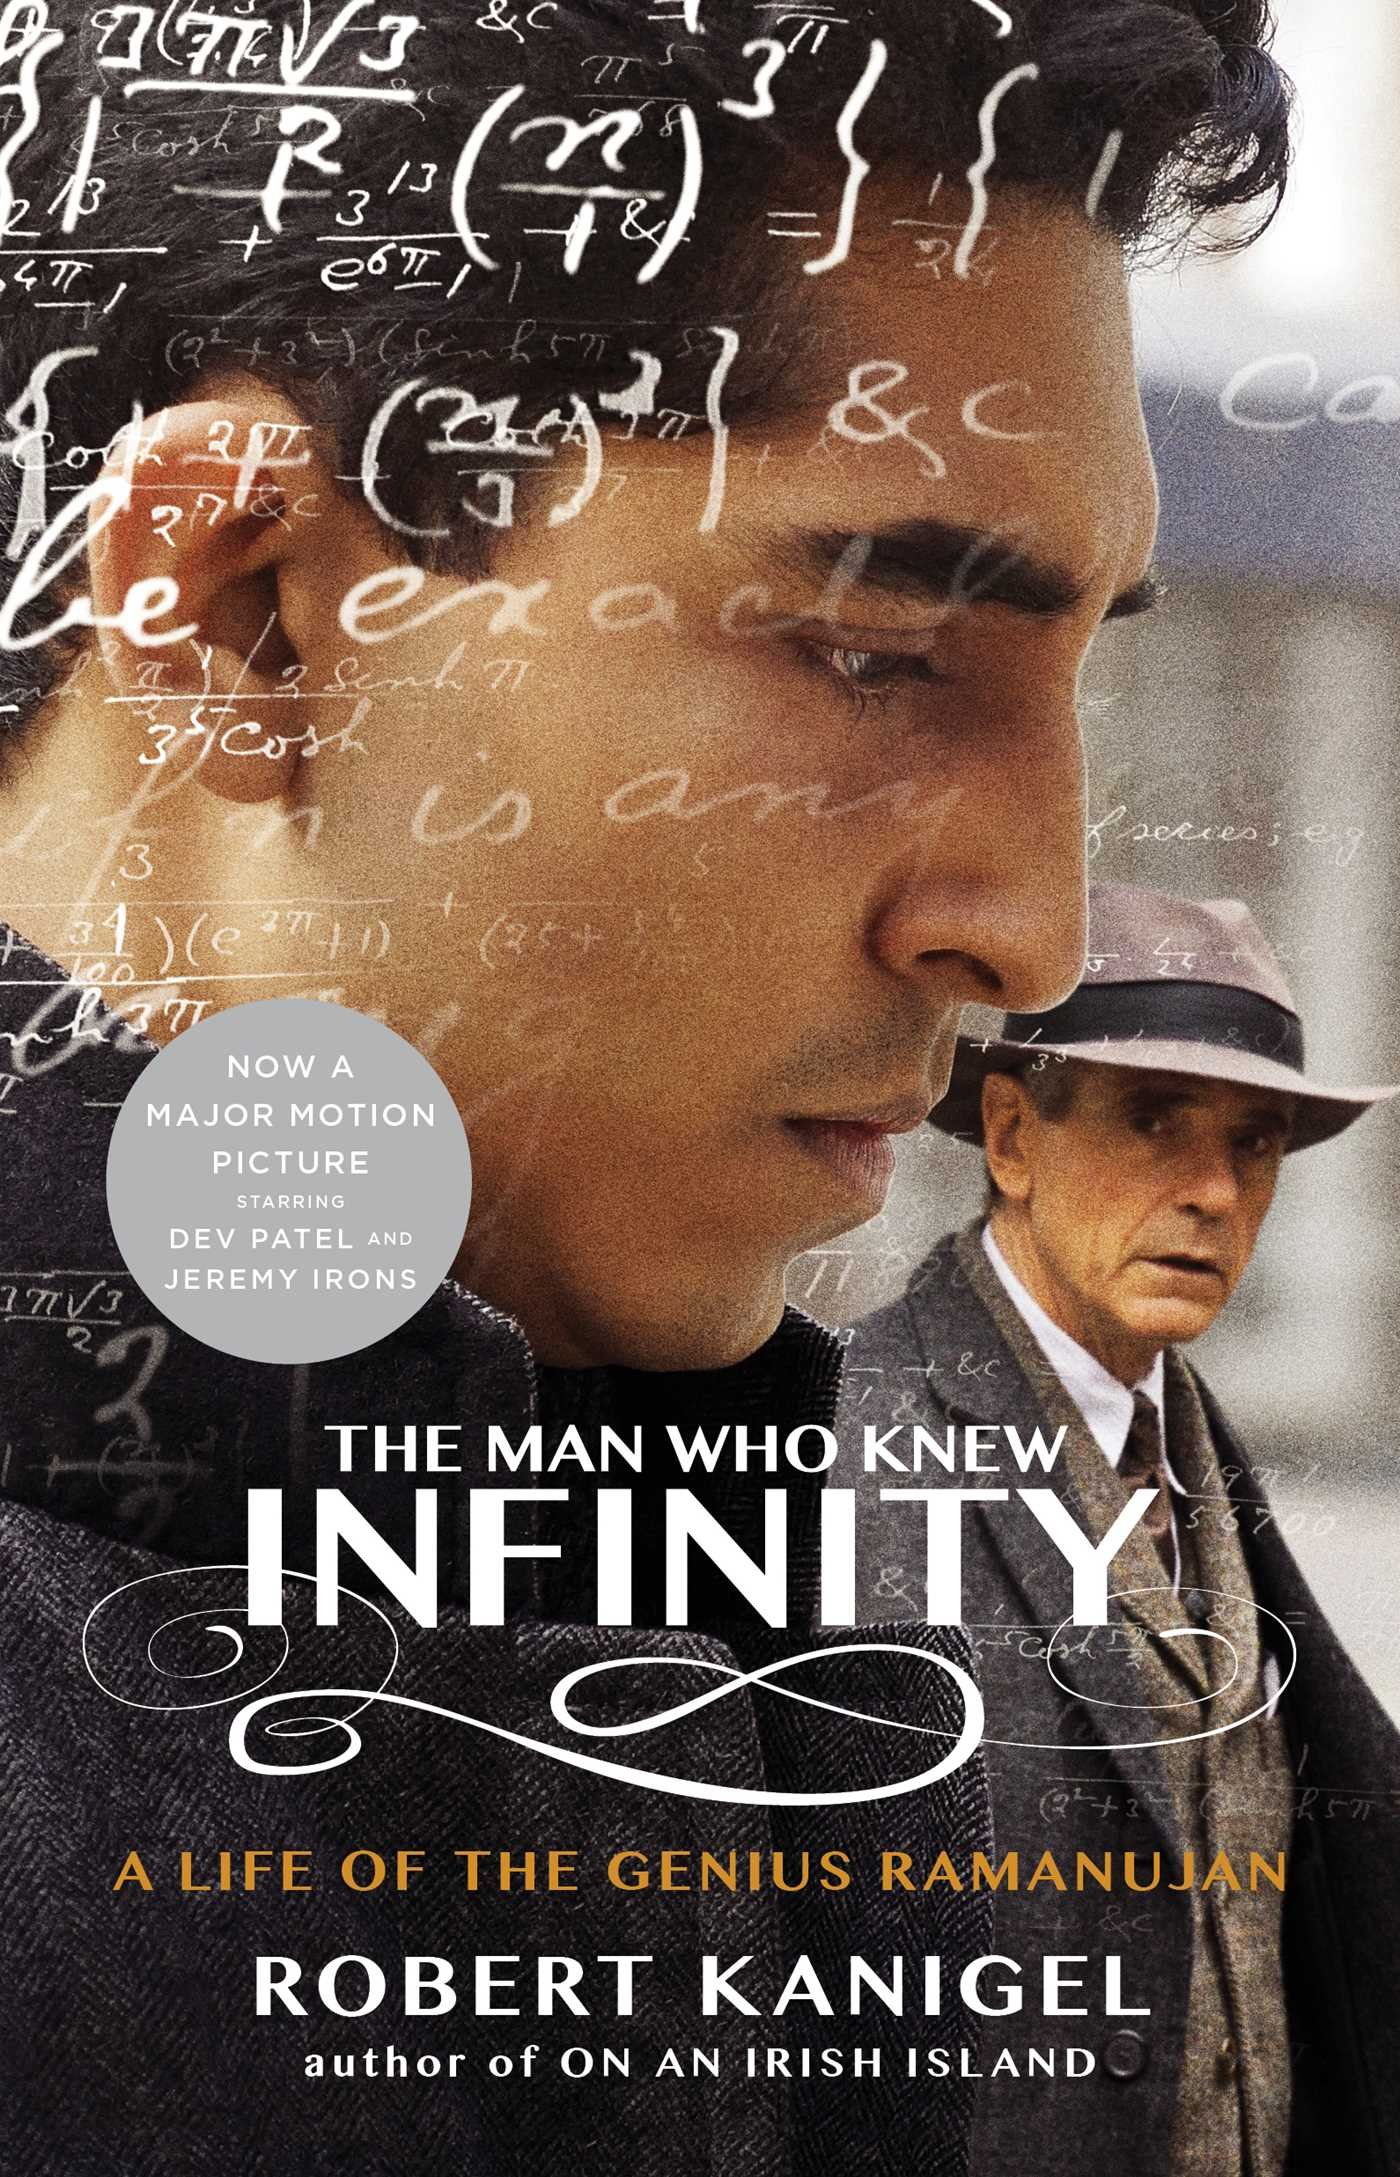 Amazon: The Man Who Knew Infinity: A Life Of The Genius Ramanujan  (9781476763491): Robert Kanigel: Books